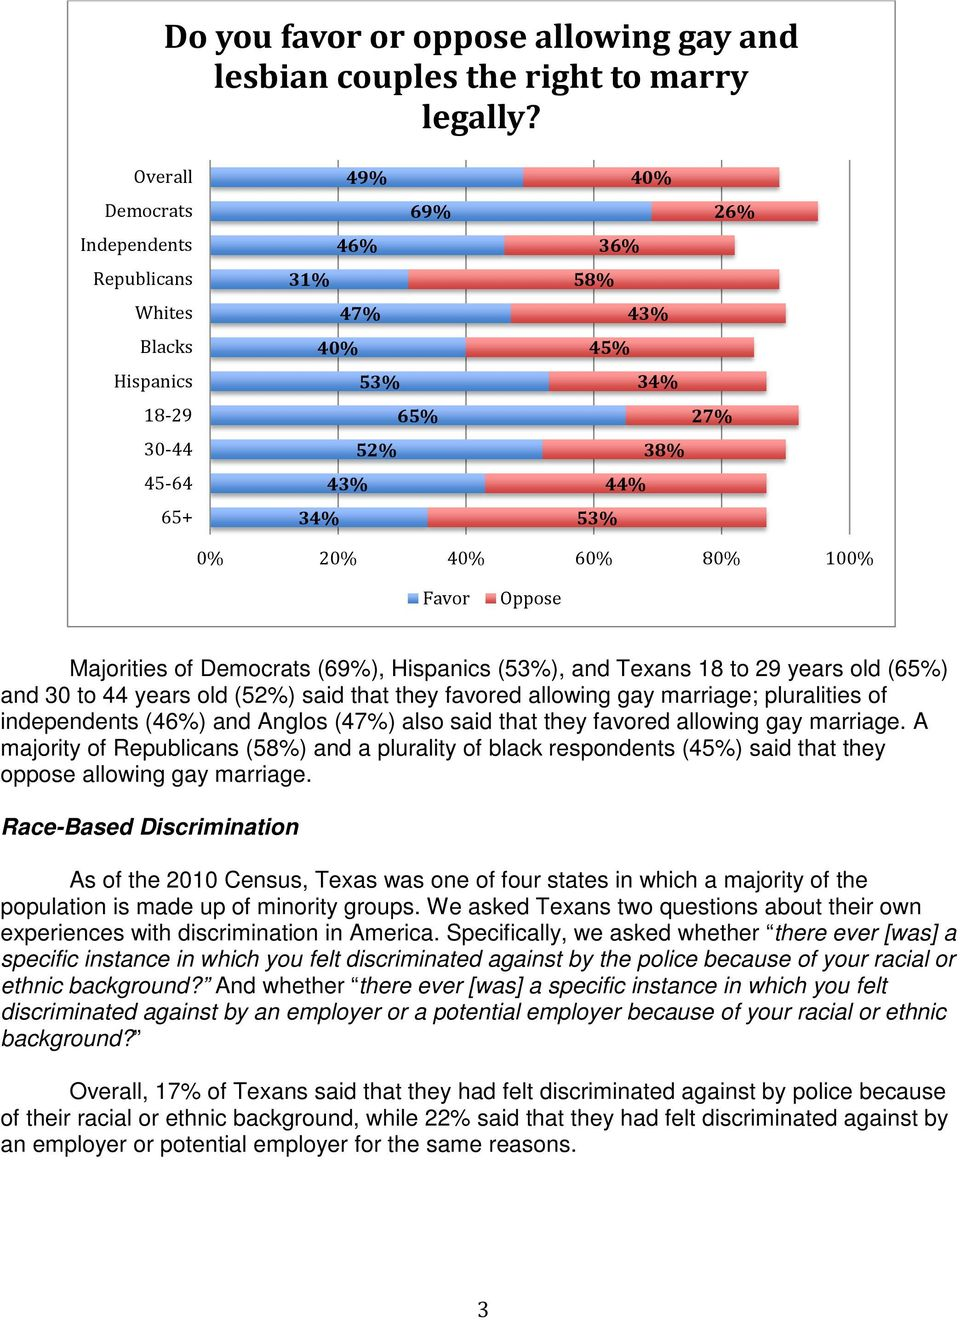 Favor Oppose Majorities of Democrats (69%), Hispanics (53%), and Texans 18 to 29 years old (65%) and 30 to 44 years old (52%) said that they favored allowing gay marriage; pluralities of independents